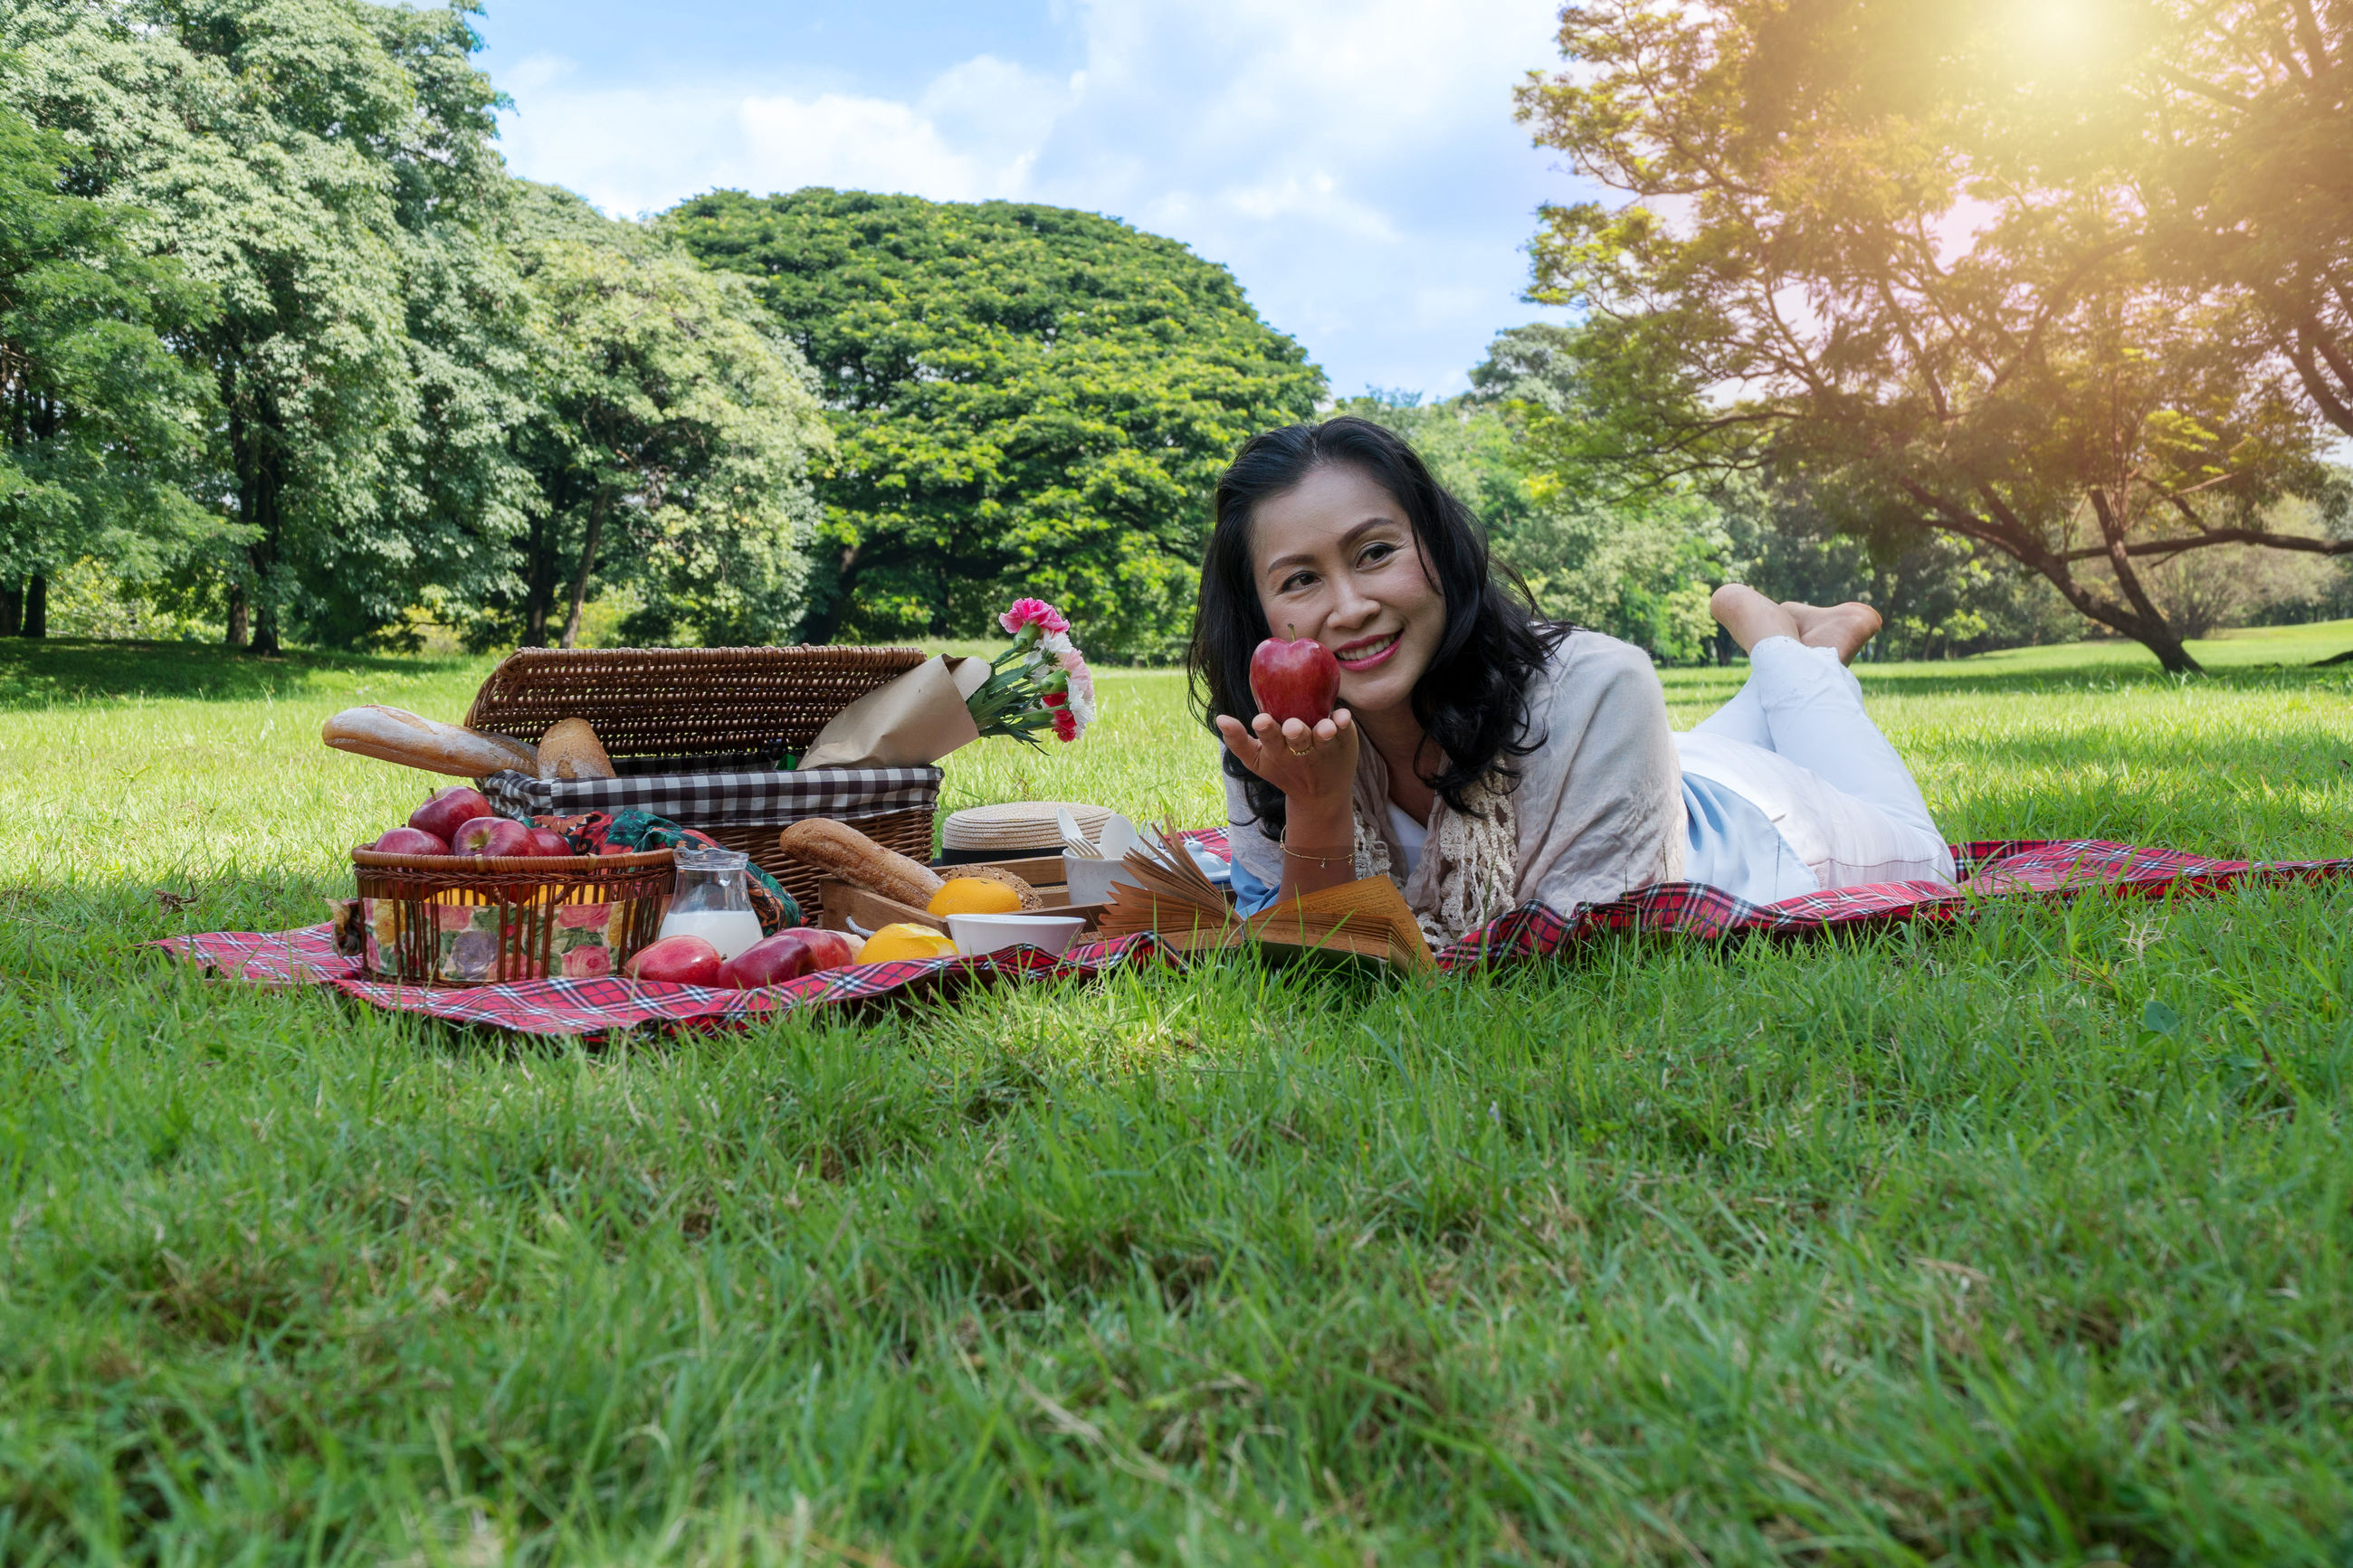 Smiling young woman holding apple while lying on grass